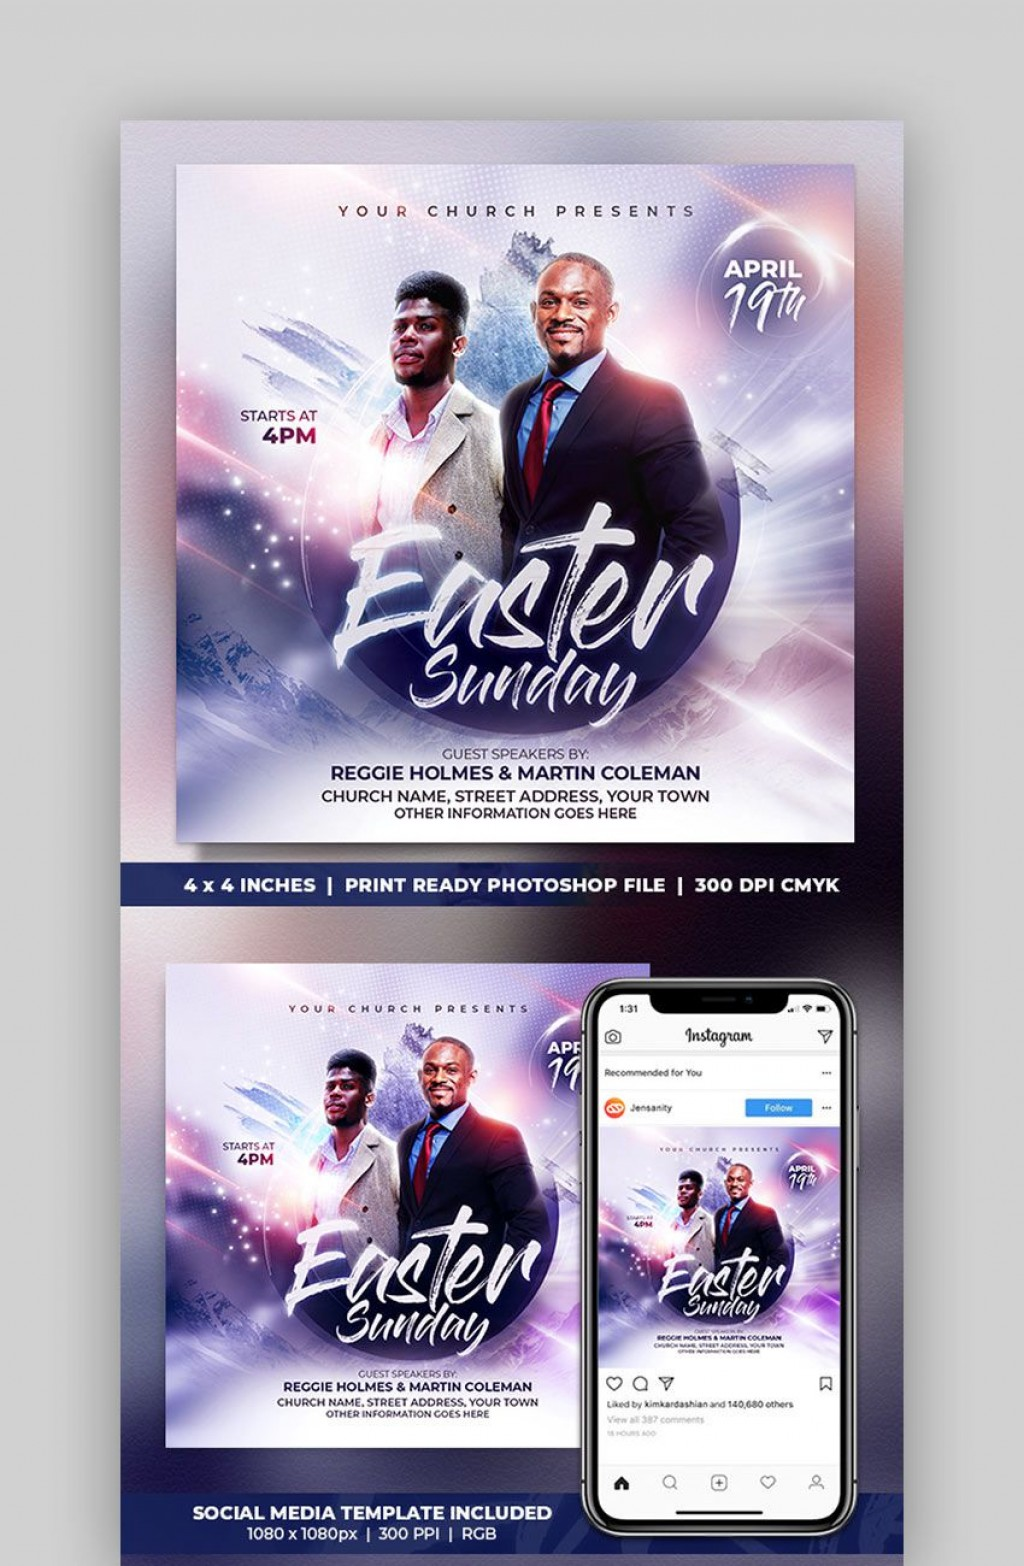 005 Frightening Church Flyer Template Free Example  Easter Anniversary Conference PsdLarge